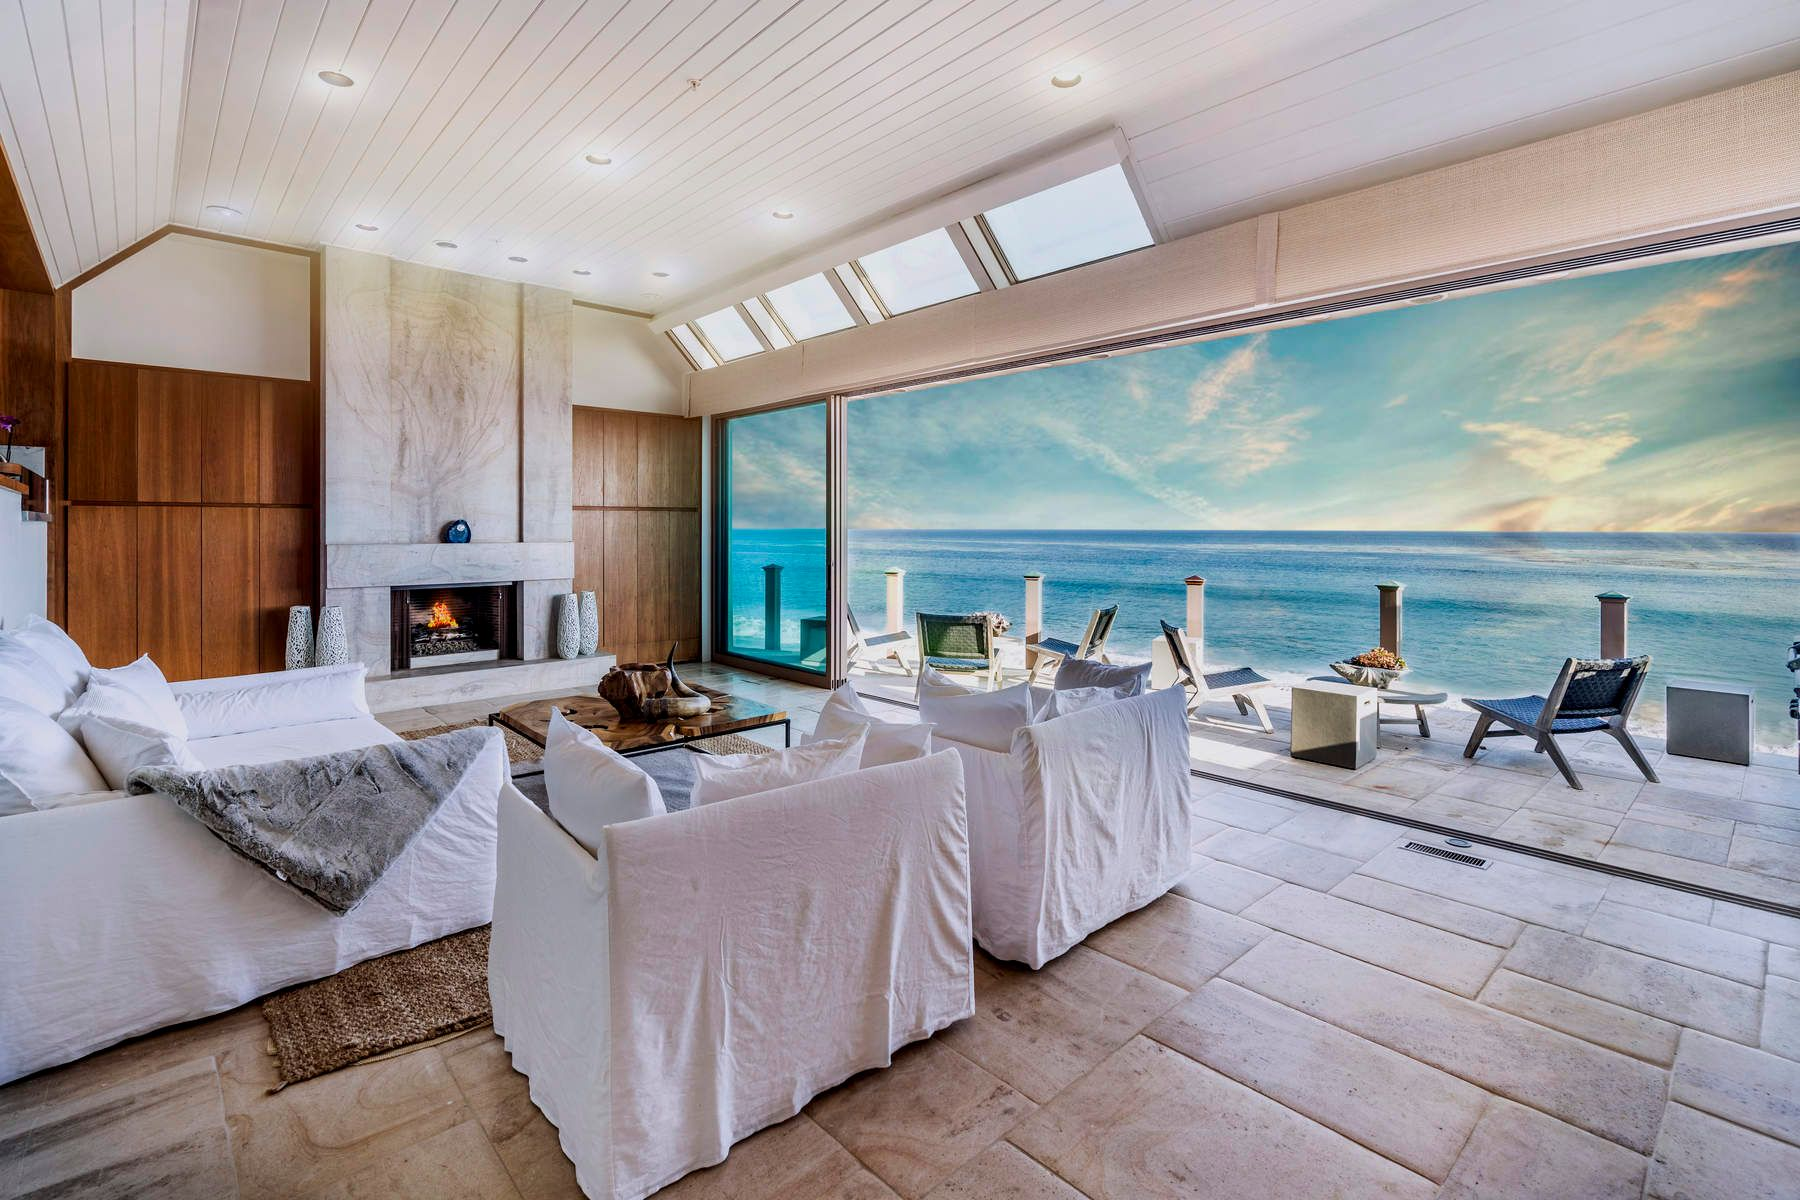 Single Family Homes for Sale at Magnificent Malibu Architectural 27352 Pacific Coast Highway Malibu, California 90265 United States